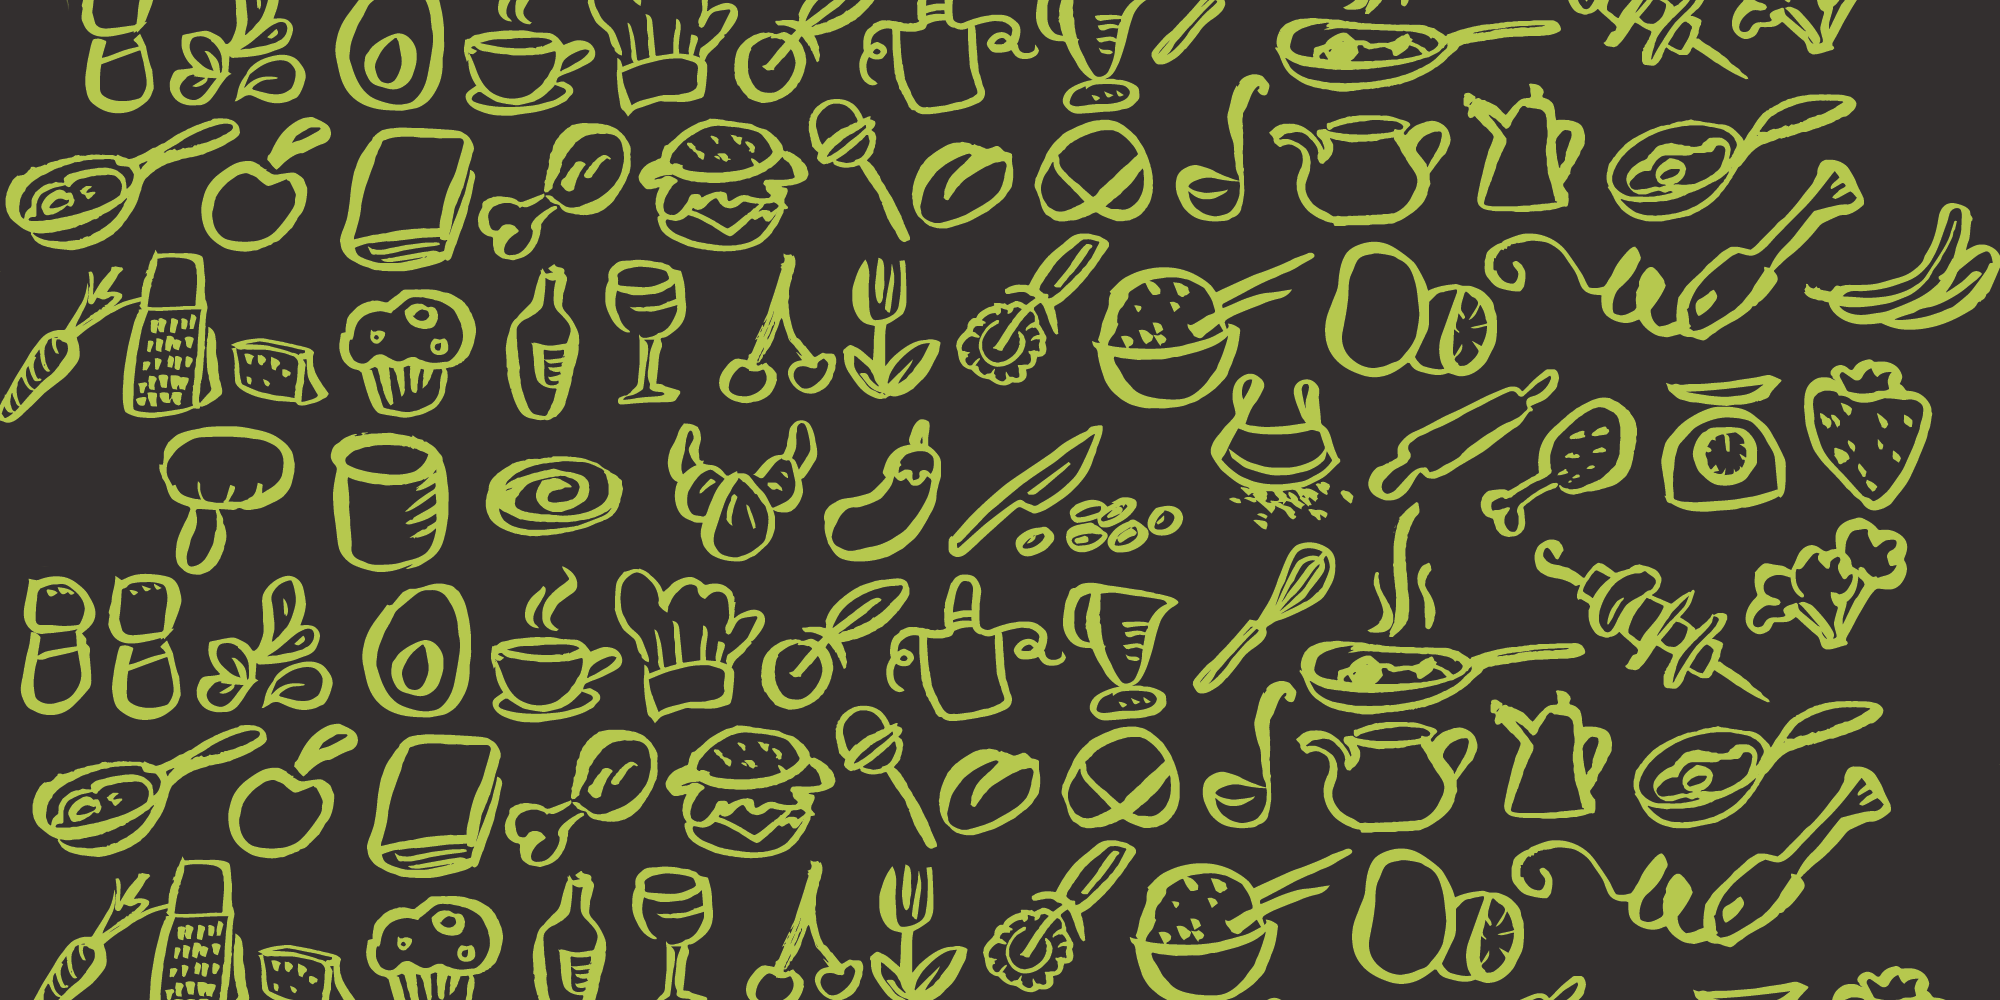 Freehand Brush icons